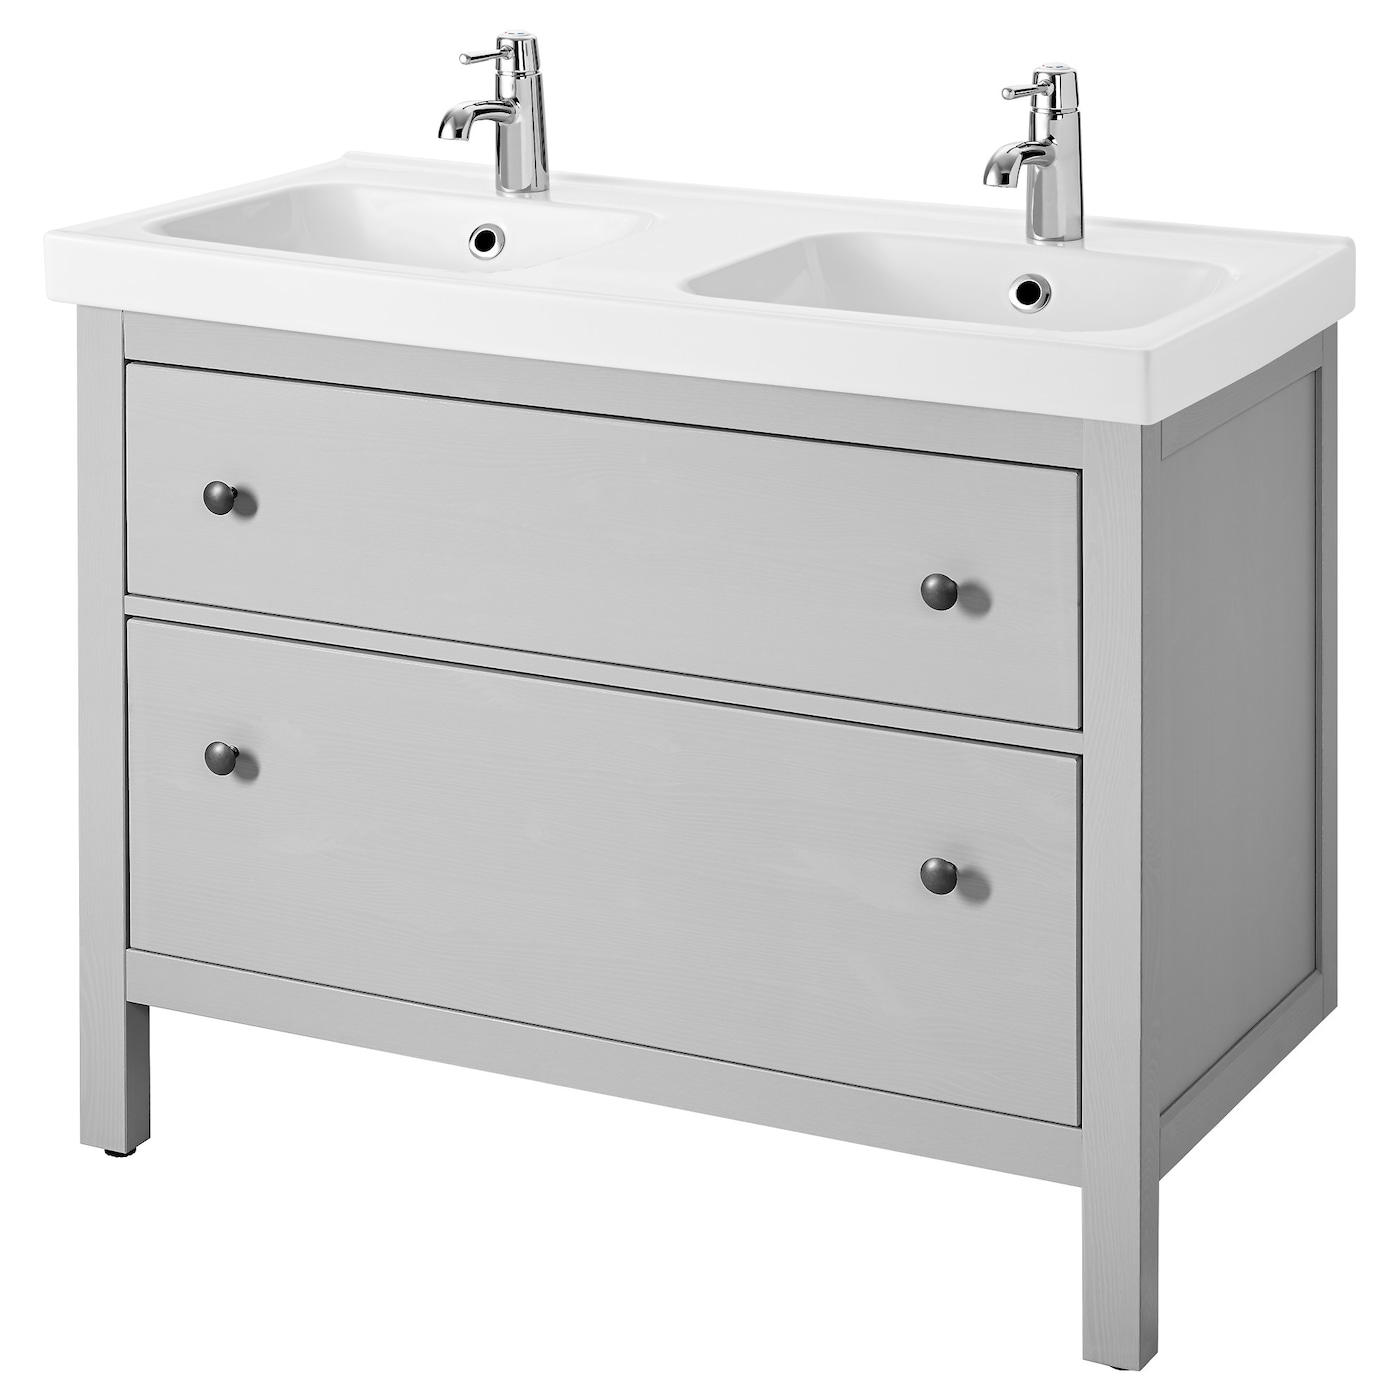 """HEMNES / ODENSVIK Sink cabinet with 5 drawers - gray 5 5/5x59 5/5x5 """""""